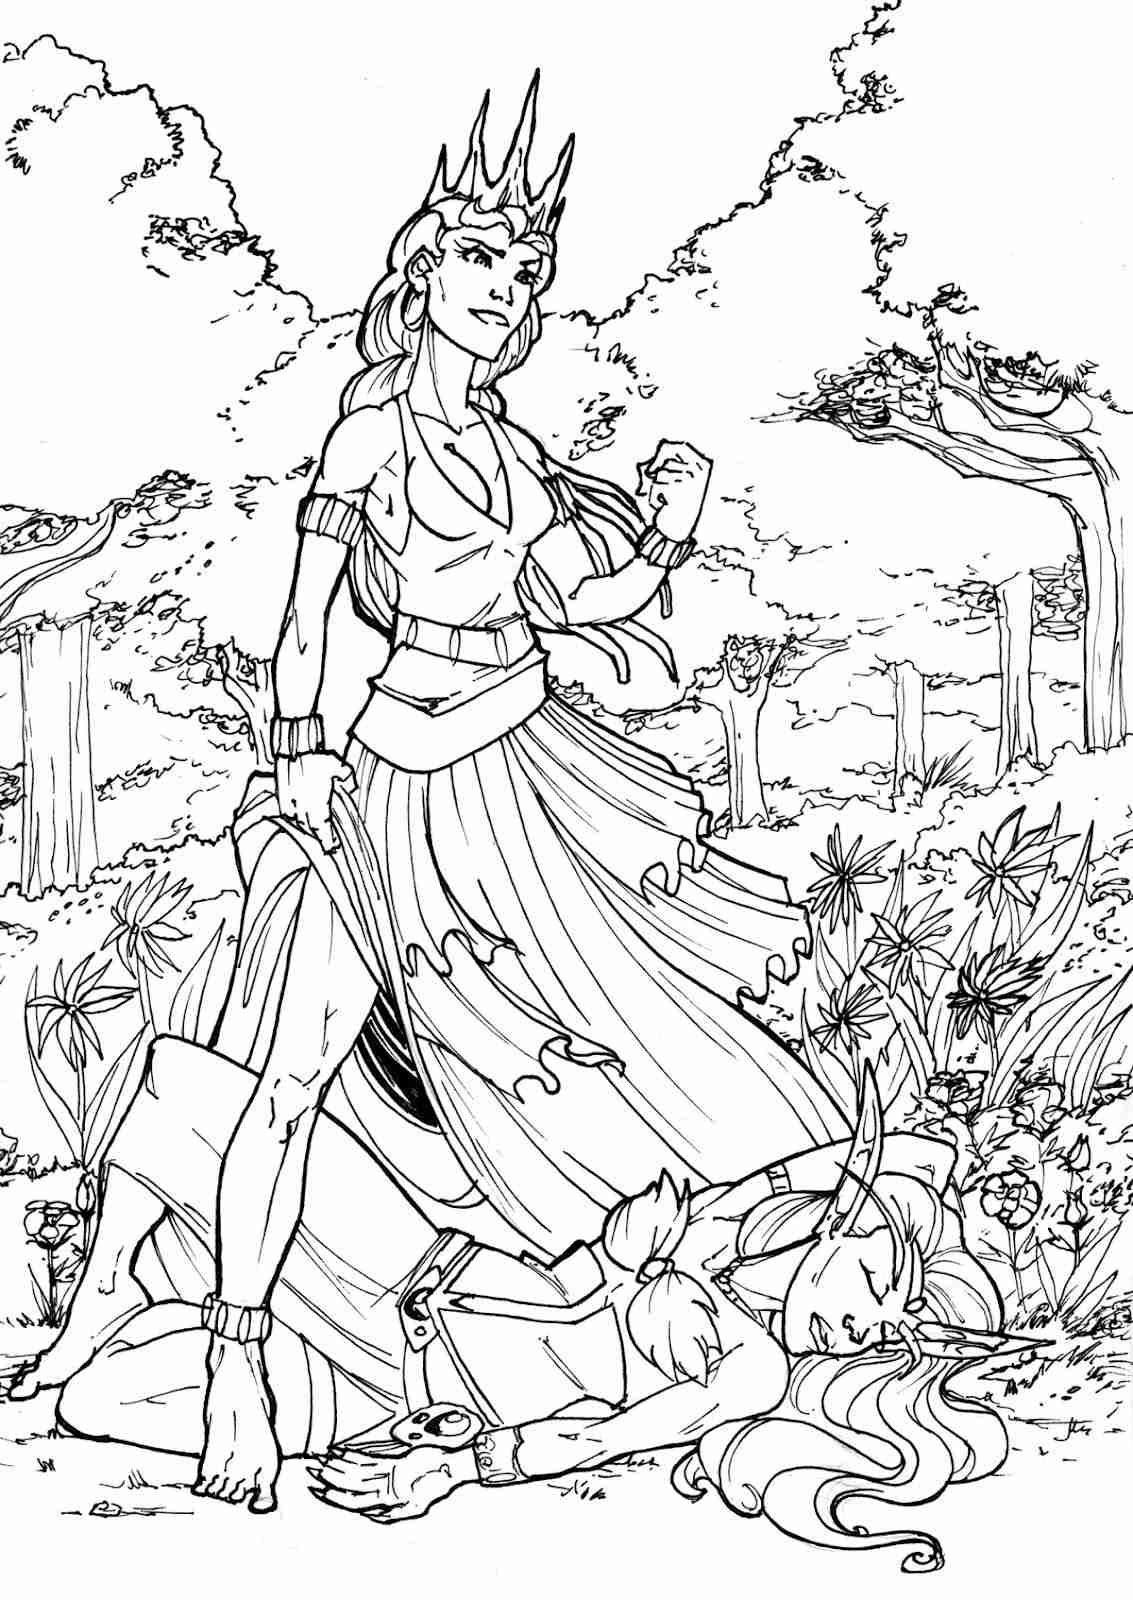 1133x1600 Narnia Coloring Pages With Glum Me In Auto Market At Olegratiy